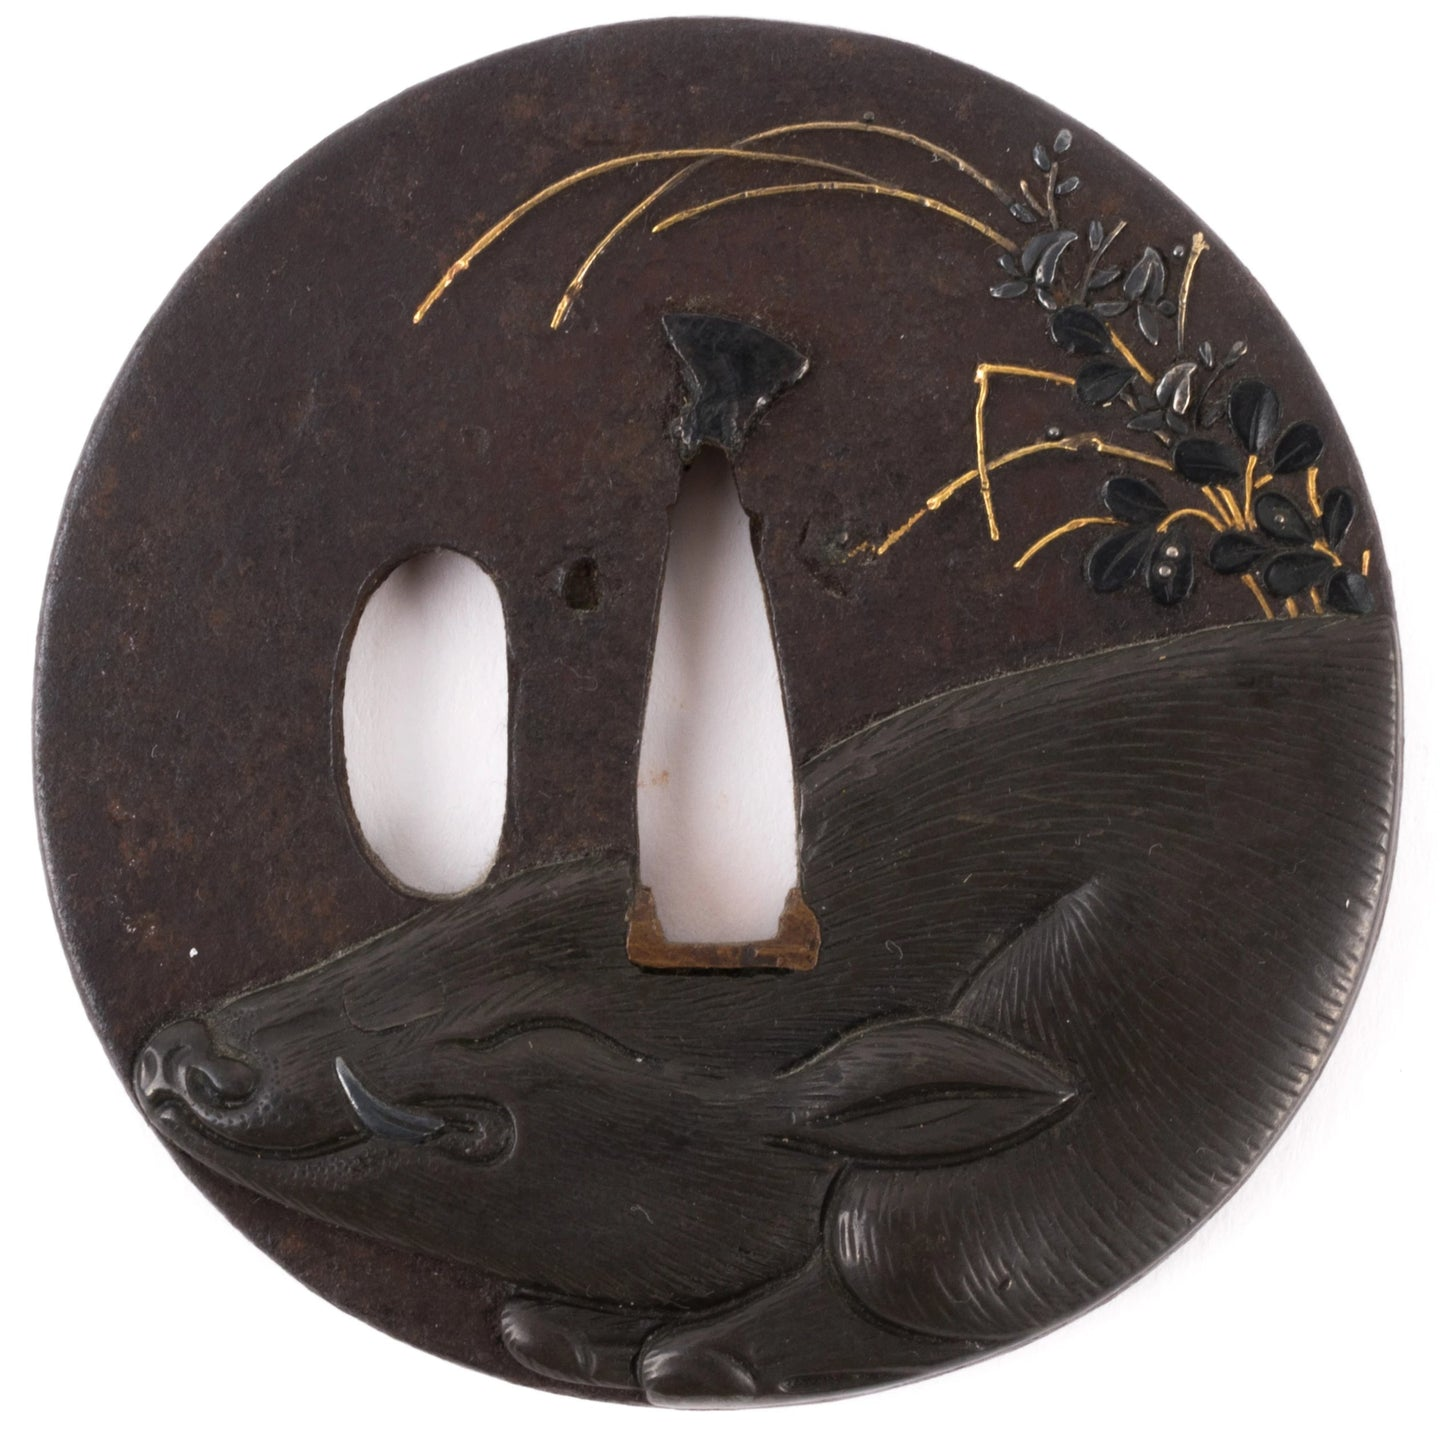 Shoami School Iron Tsuba with Wild Boar Among Autumn Flowers